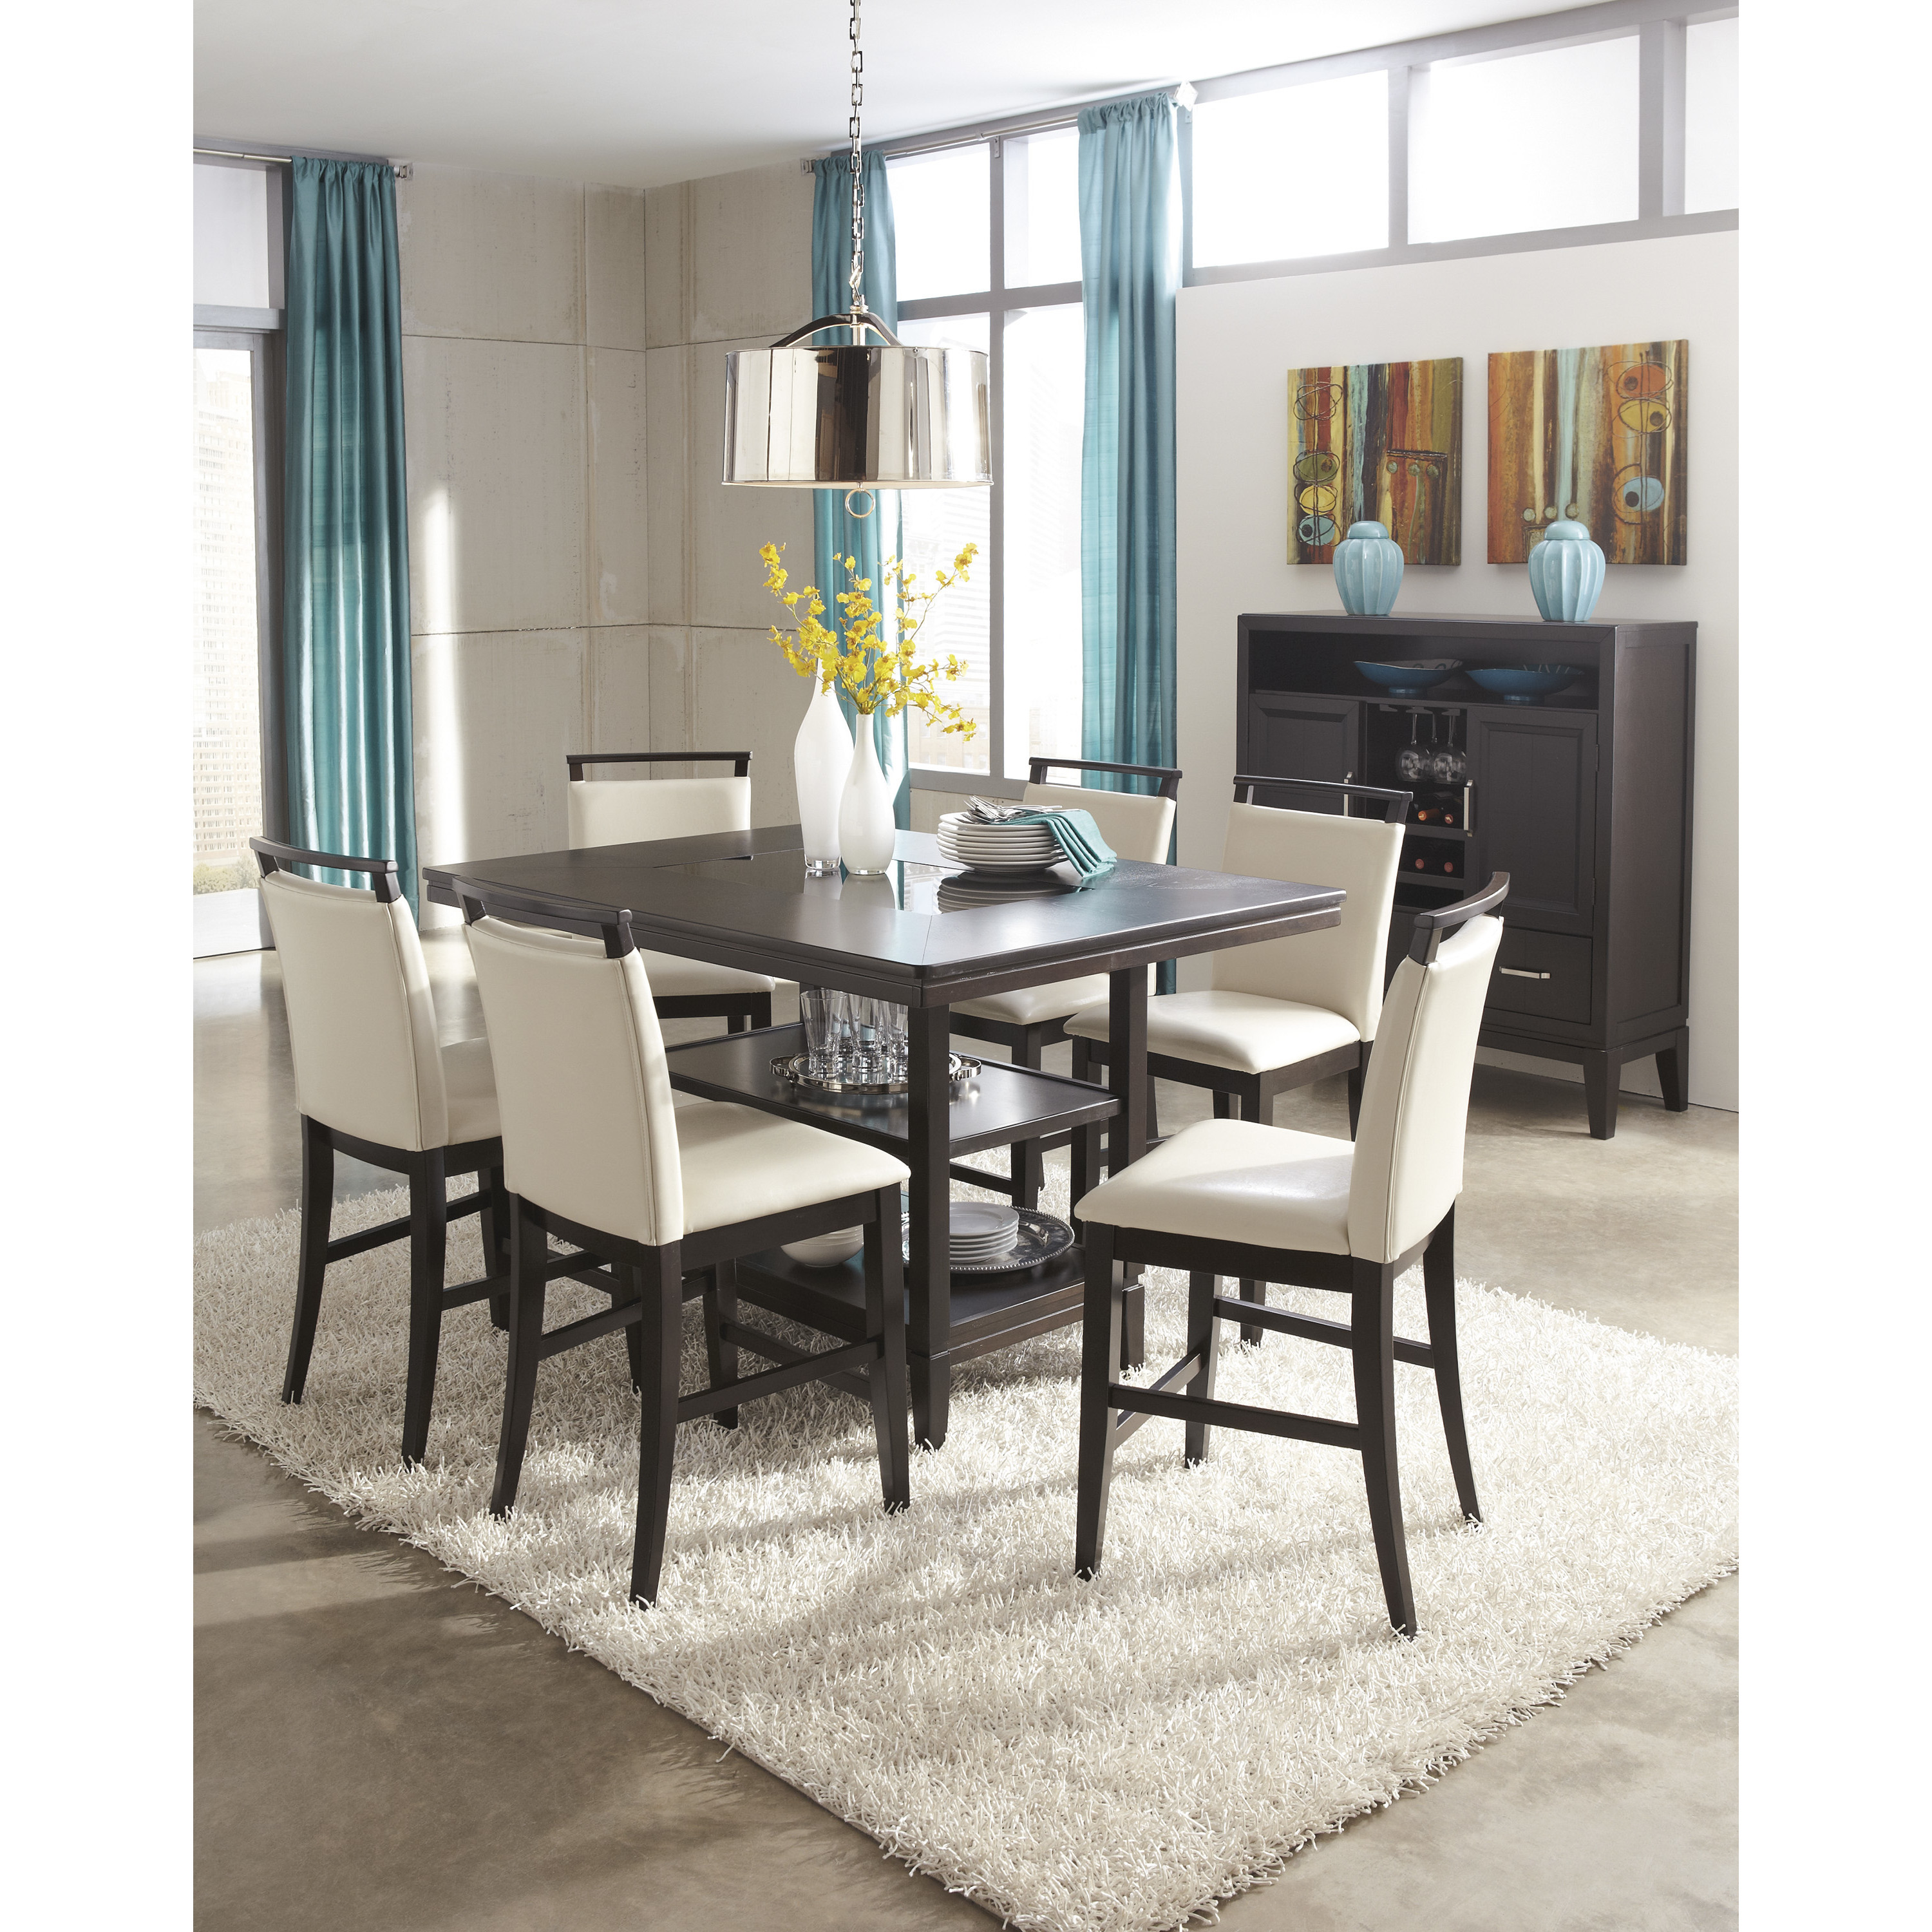 Best ideas about Tall Dining Table . Save or Pin Signature Design by Ashley Trishelle Counter Height Dining Now.